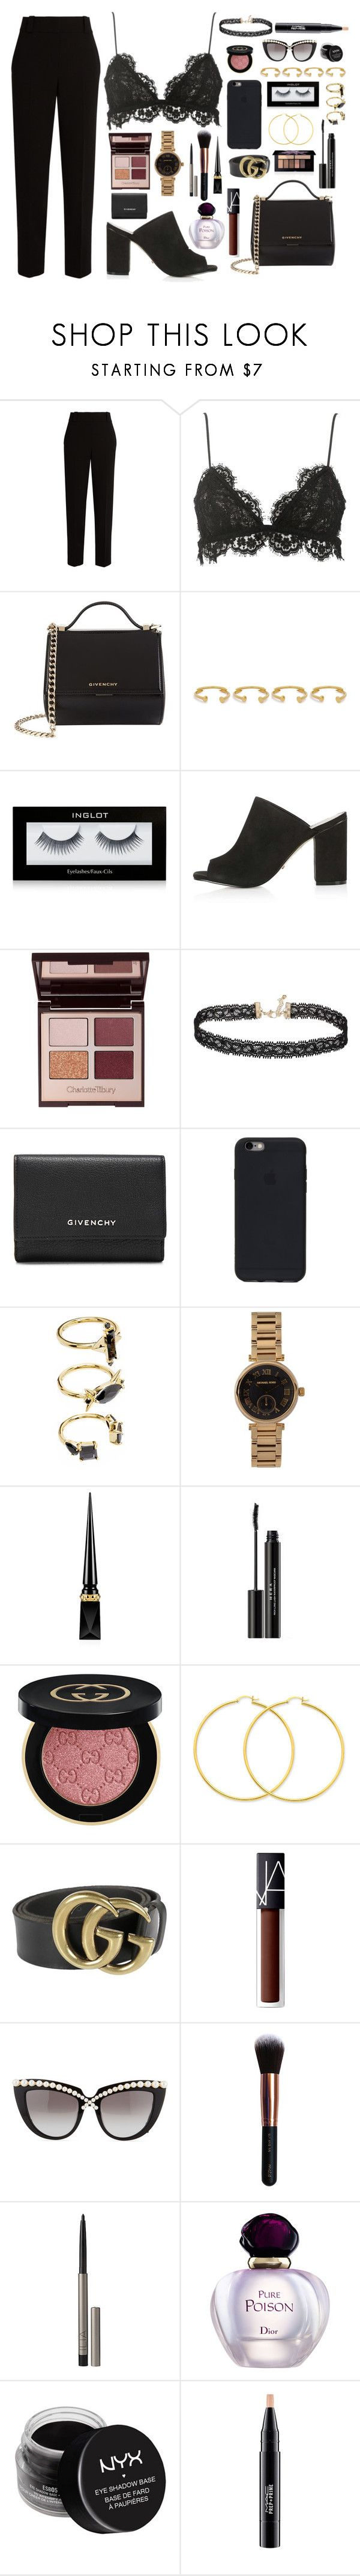 """""""2029"""" by thecaitlinpeters ❤ liked on Polyvore featuring The Row, Isabel Marant, Givenchy, Joanna Laura Constantine, Inglot, Topshop, Charlotte Tilbury, Miss Selfridge, Noir Jewelry and MICHAEL Michael Kors"""